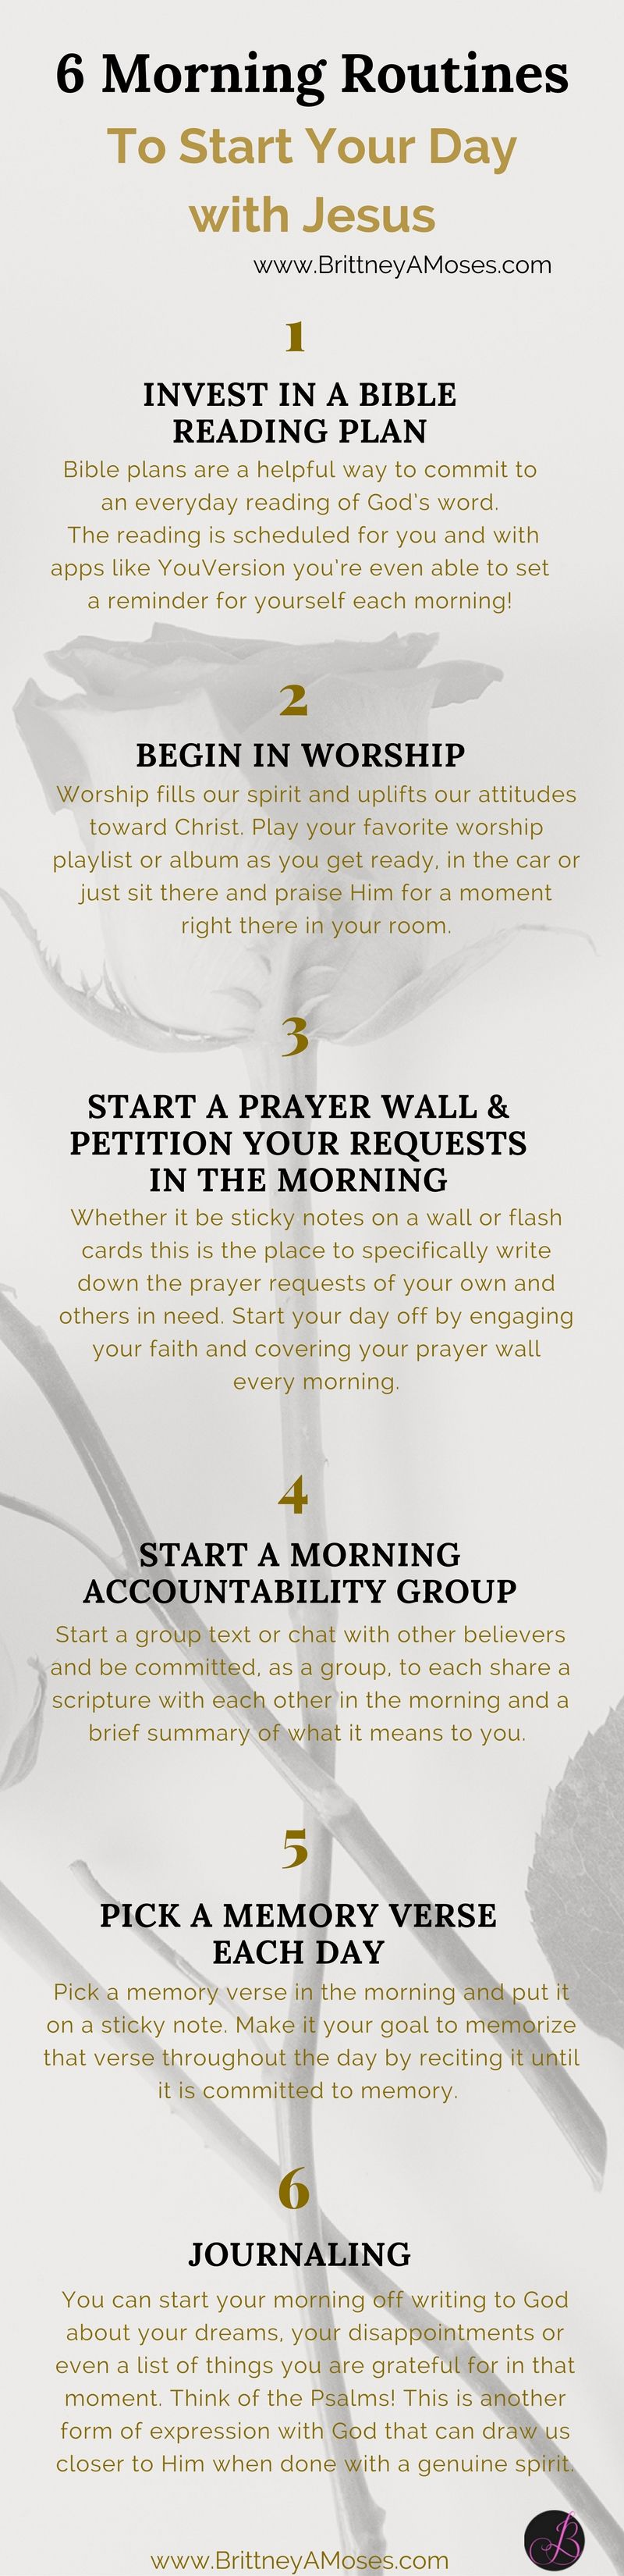 10 morning routines to start your day with jesus bible 10 morning routines to start your day with jesus negle Choice Image